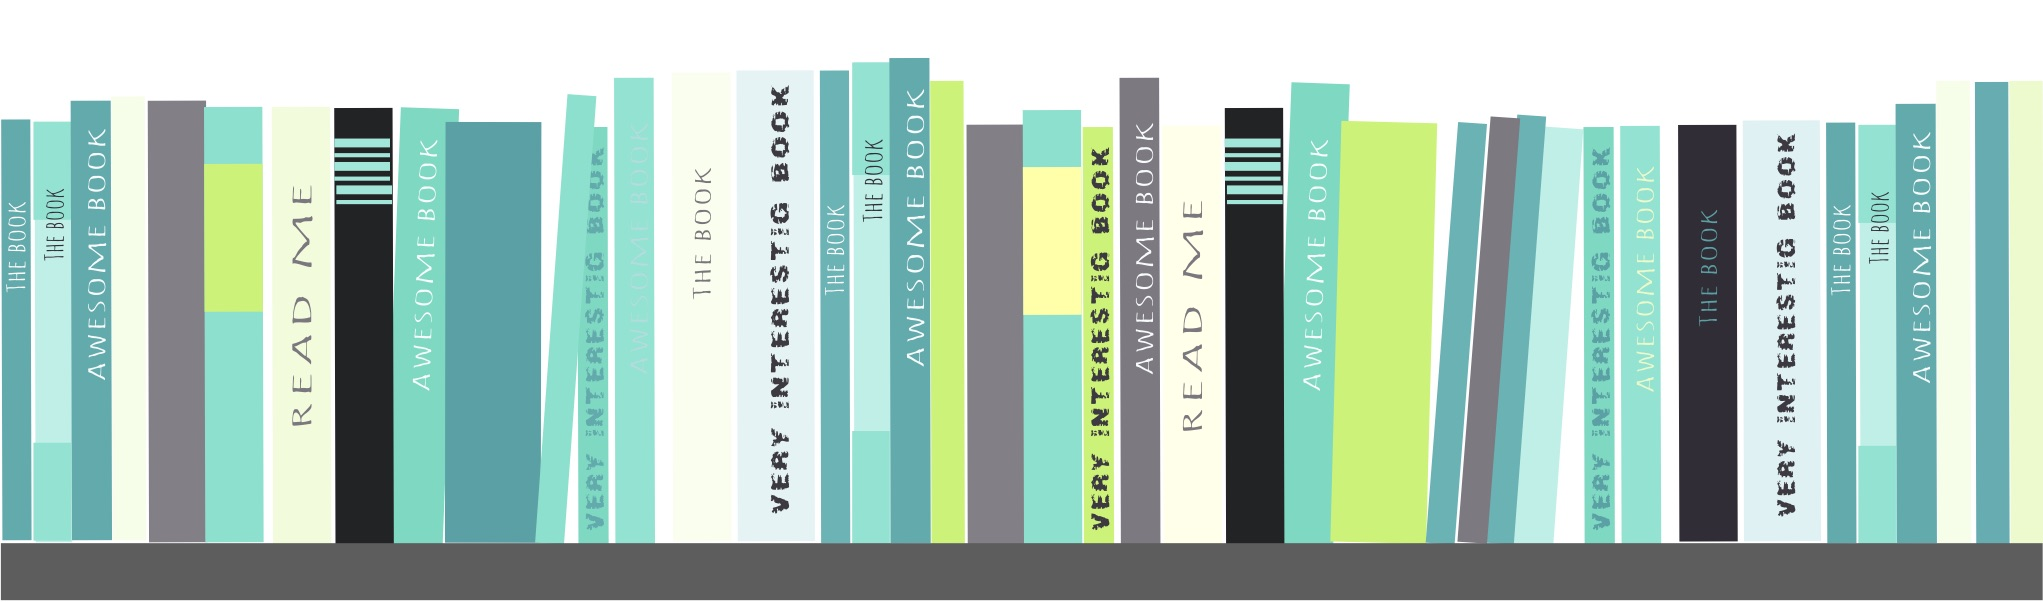 Stand Out Designs : How to make your book cover design stand out on the shelf the writer